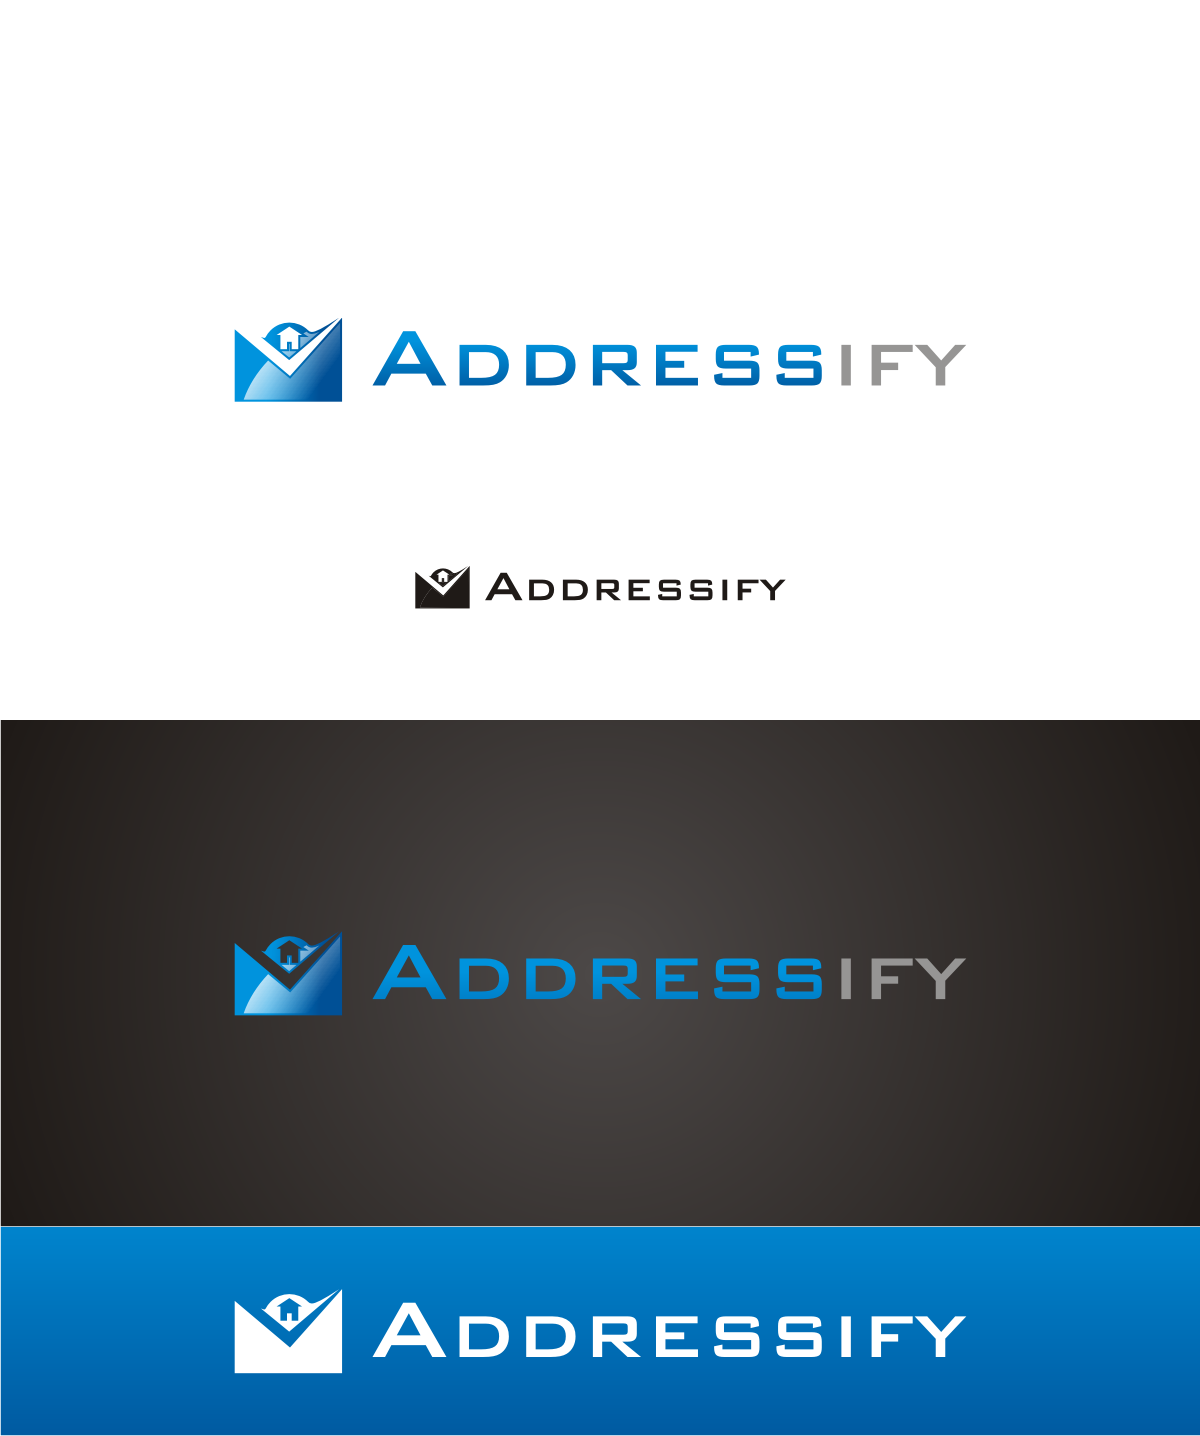 logo for Addressify